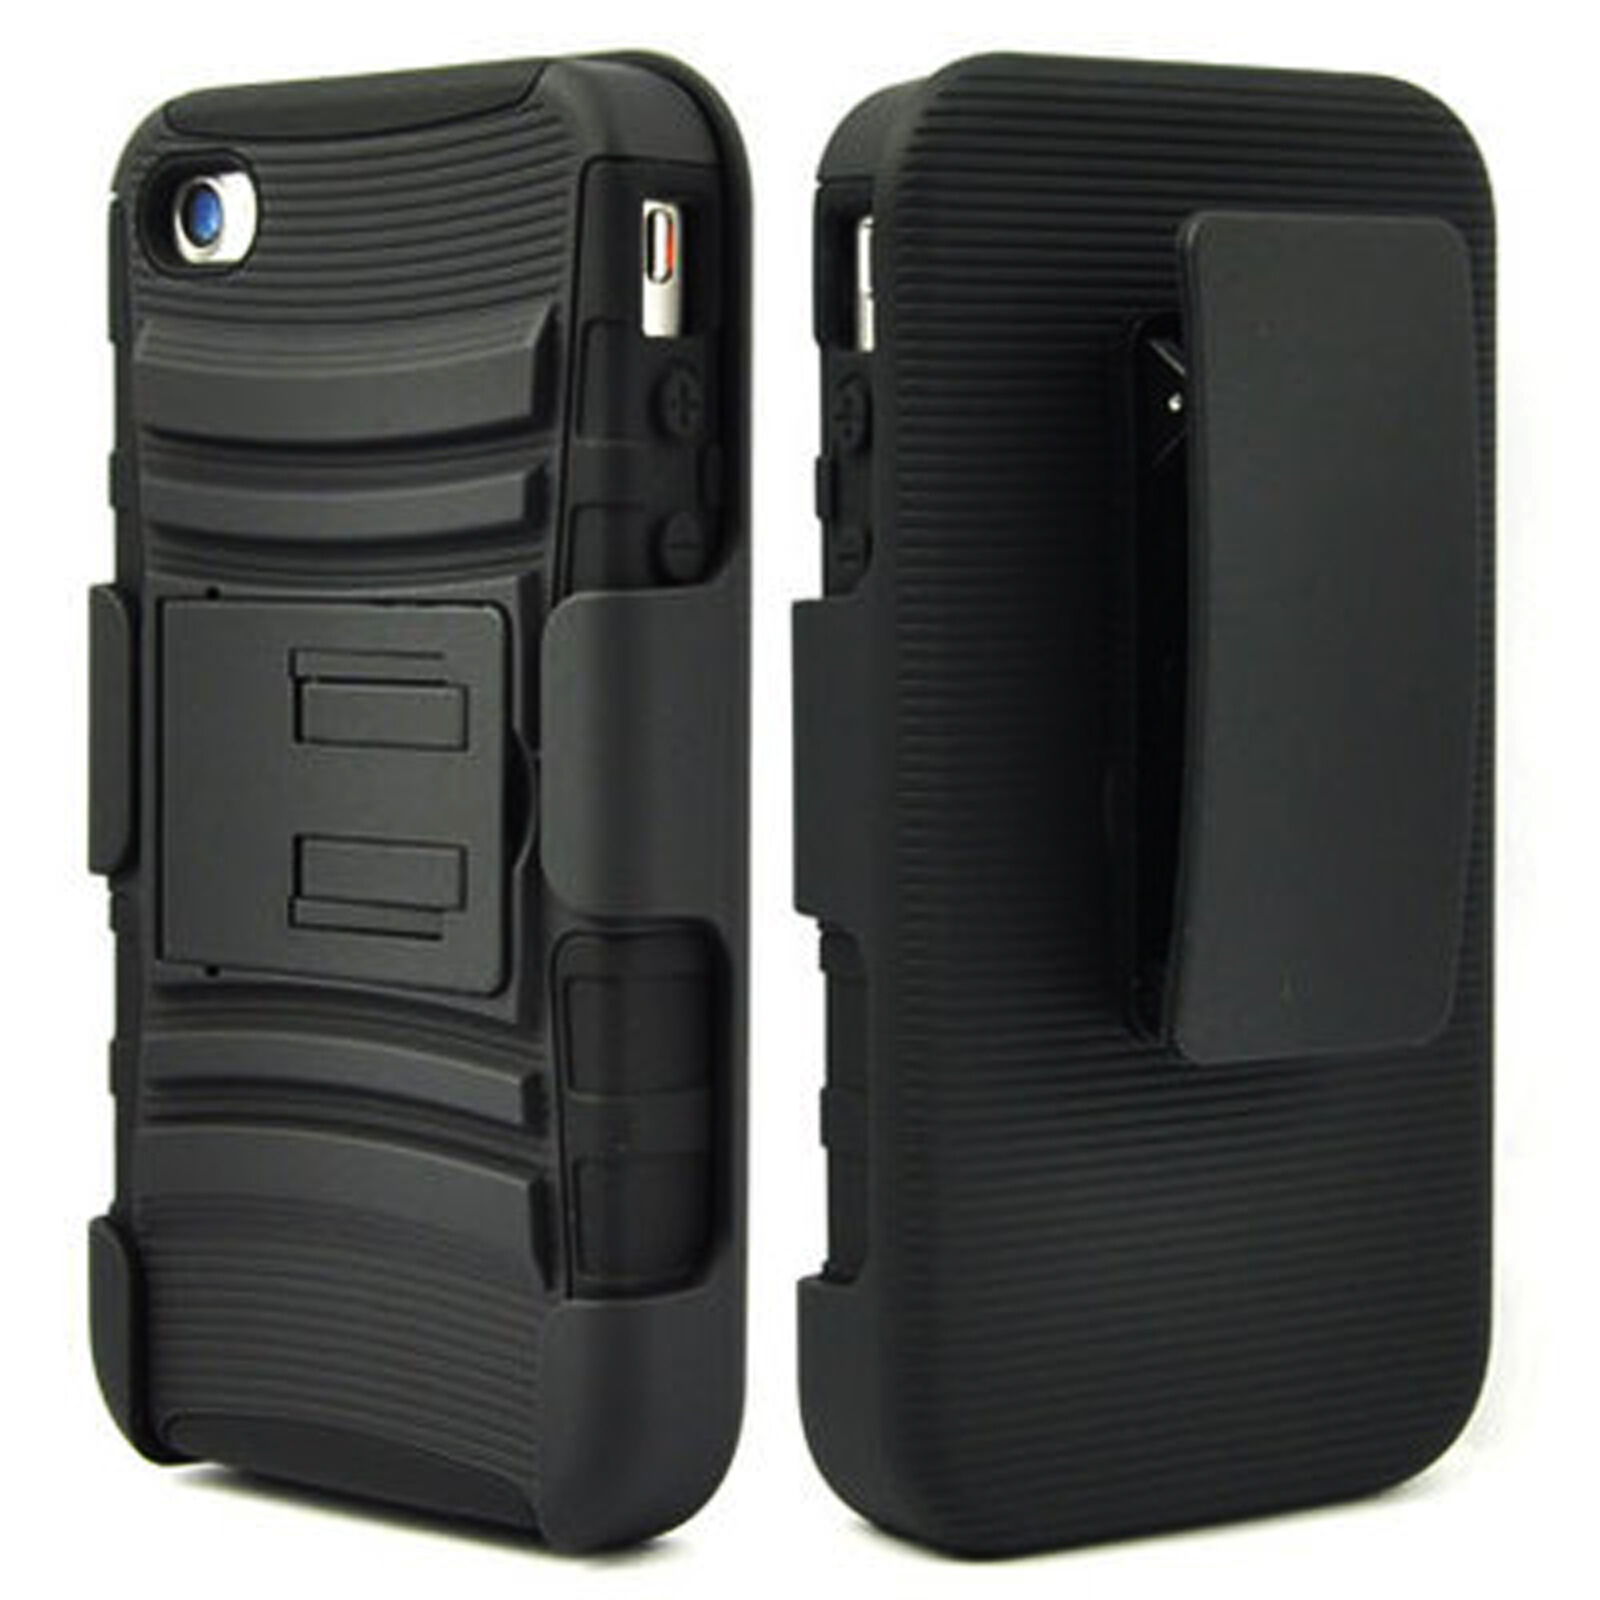 BLACK 3 IN 1 RUGGED COMBO CASE & BELT CLIP HOLSTER KICKSTAND APPLE IPHONE 4 4S